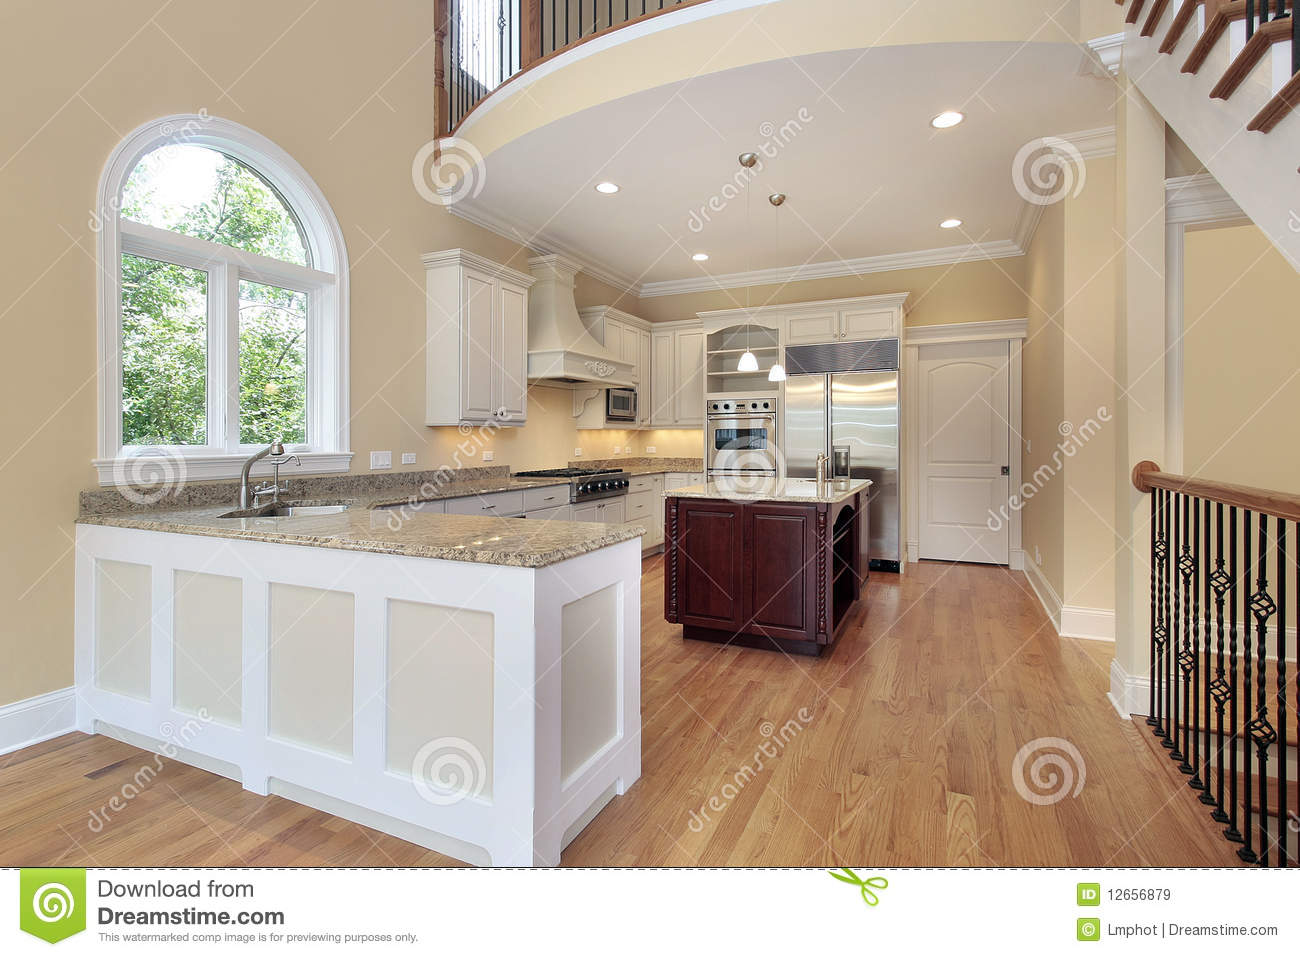 Kitchen with balcony royalty free stock images image for Balcony kitchen